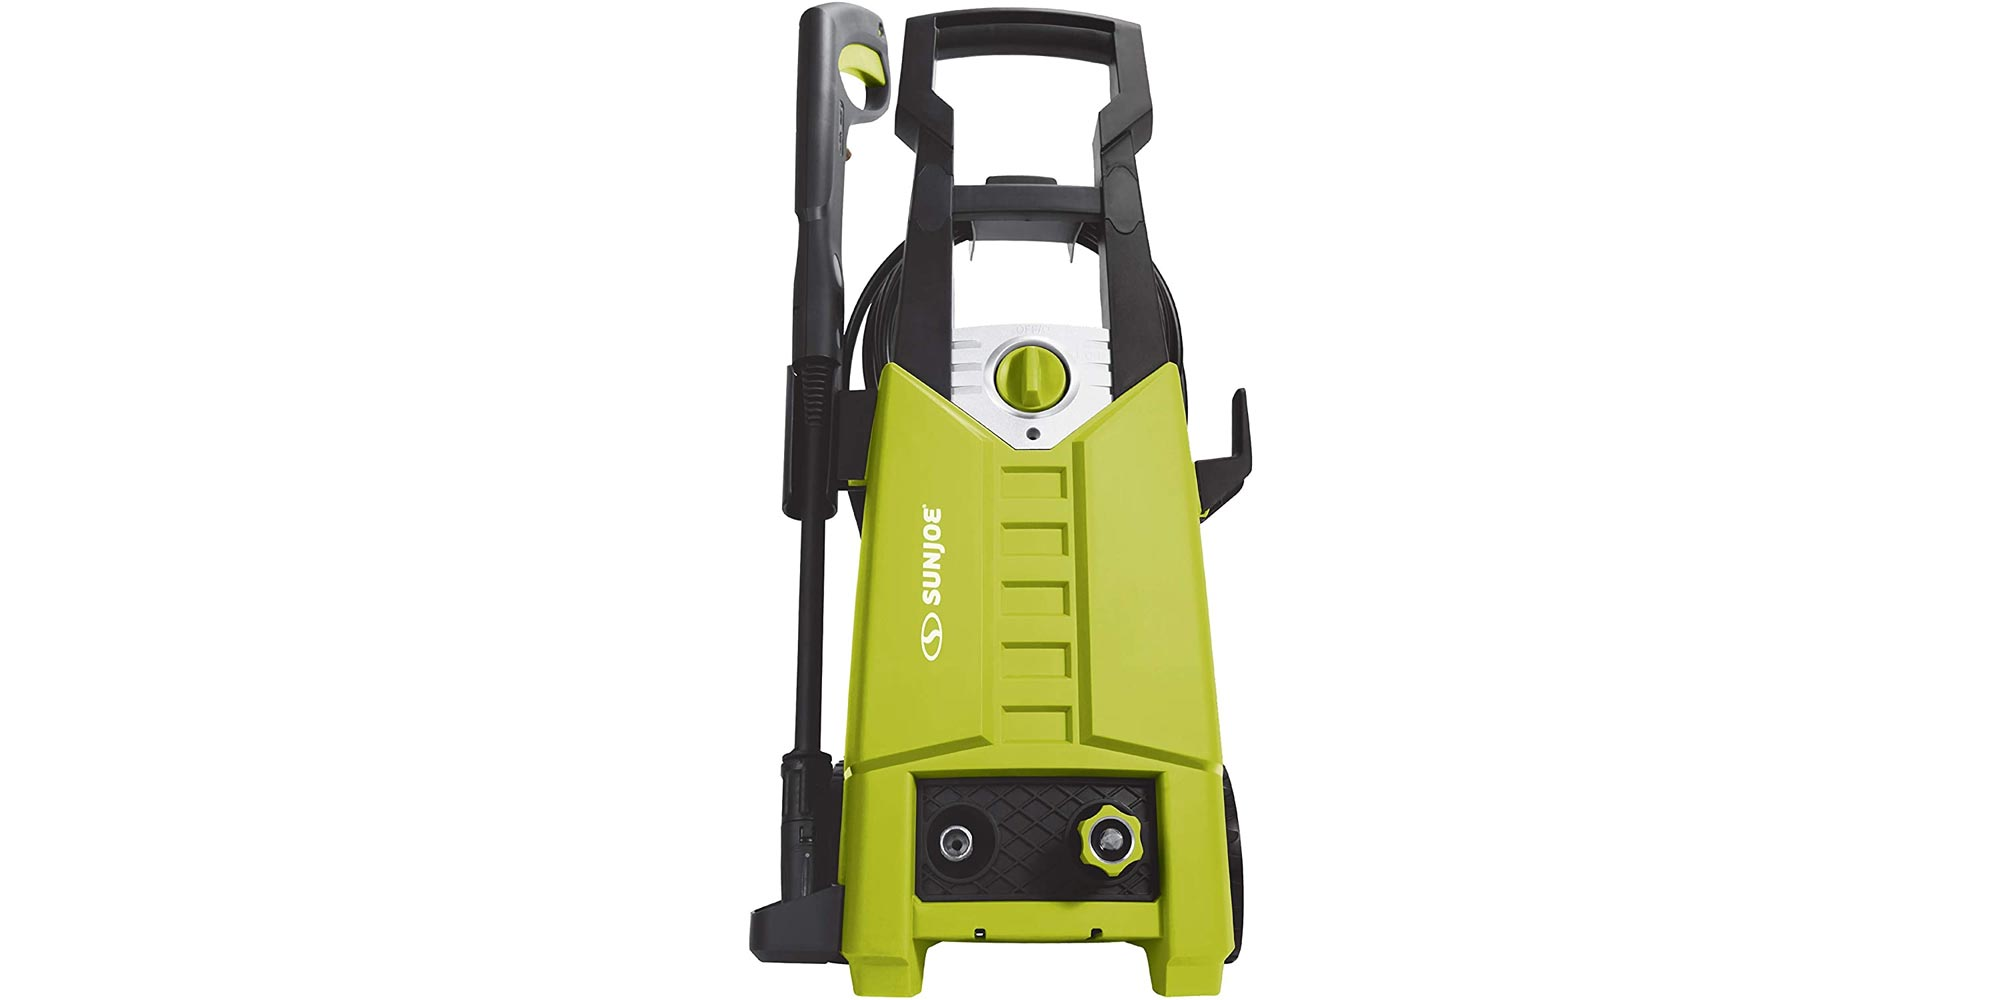 Score an off-season discount on Sun Joe's 2000PSI electric pressure washer at $75